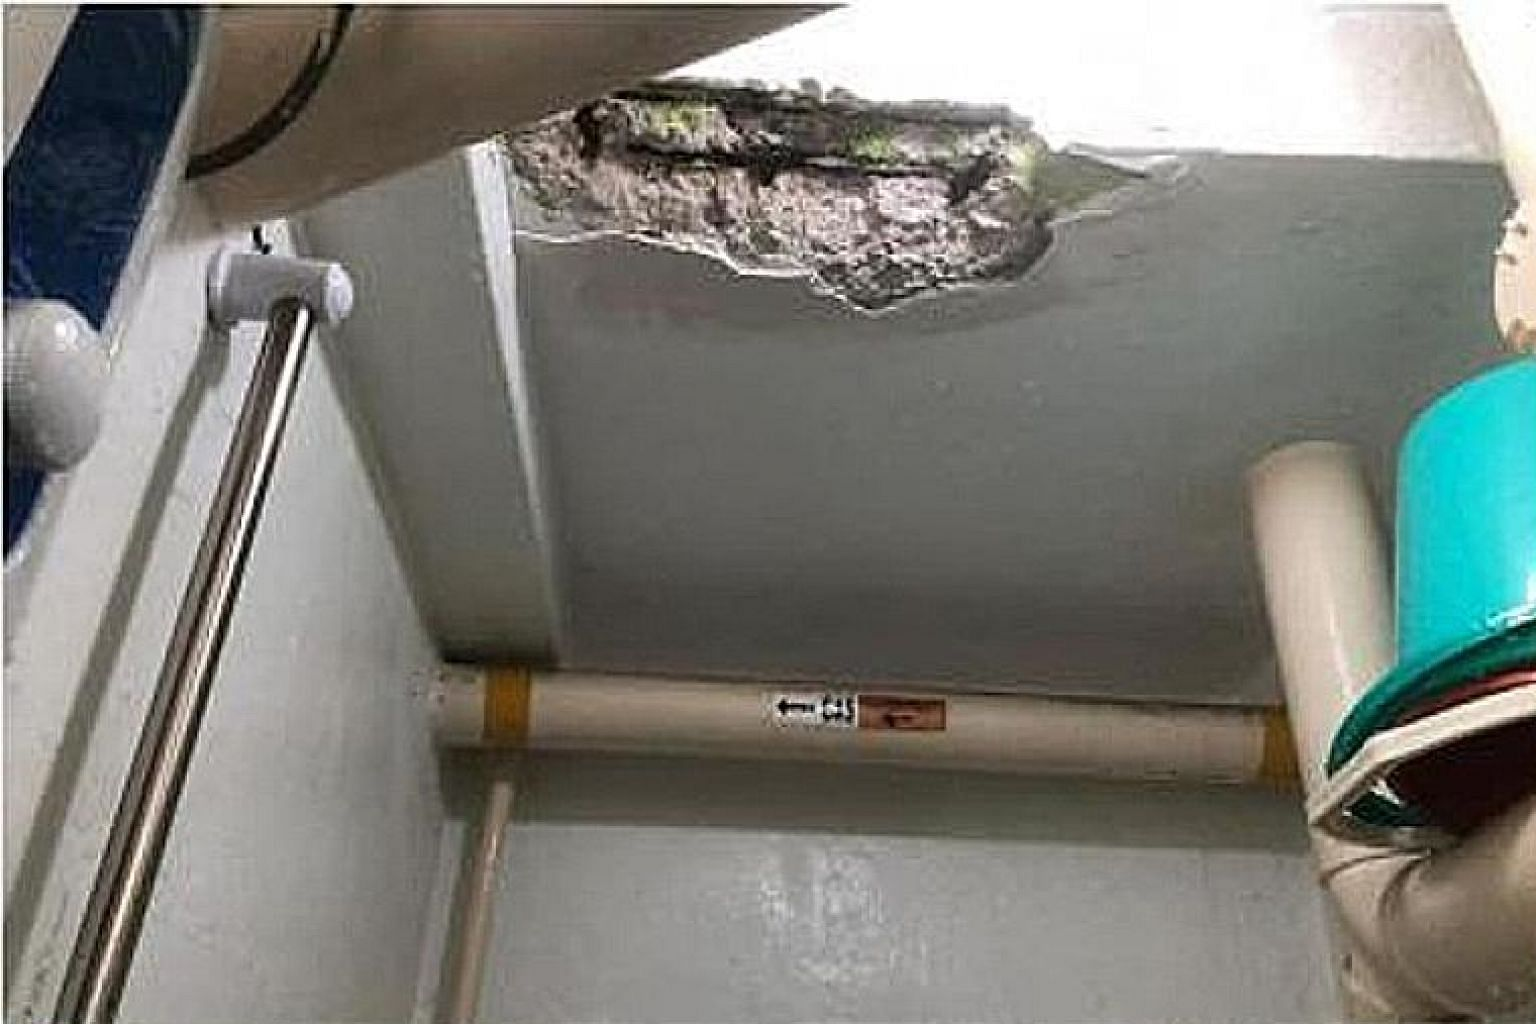 Ms Syasha DanialAlissa posted photos on Facebook showing her son's injured back and the affected toilet ceiling.